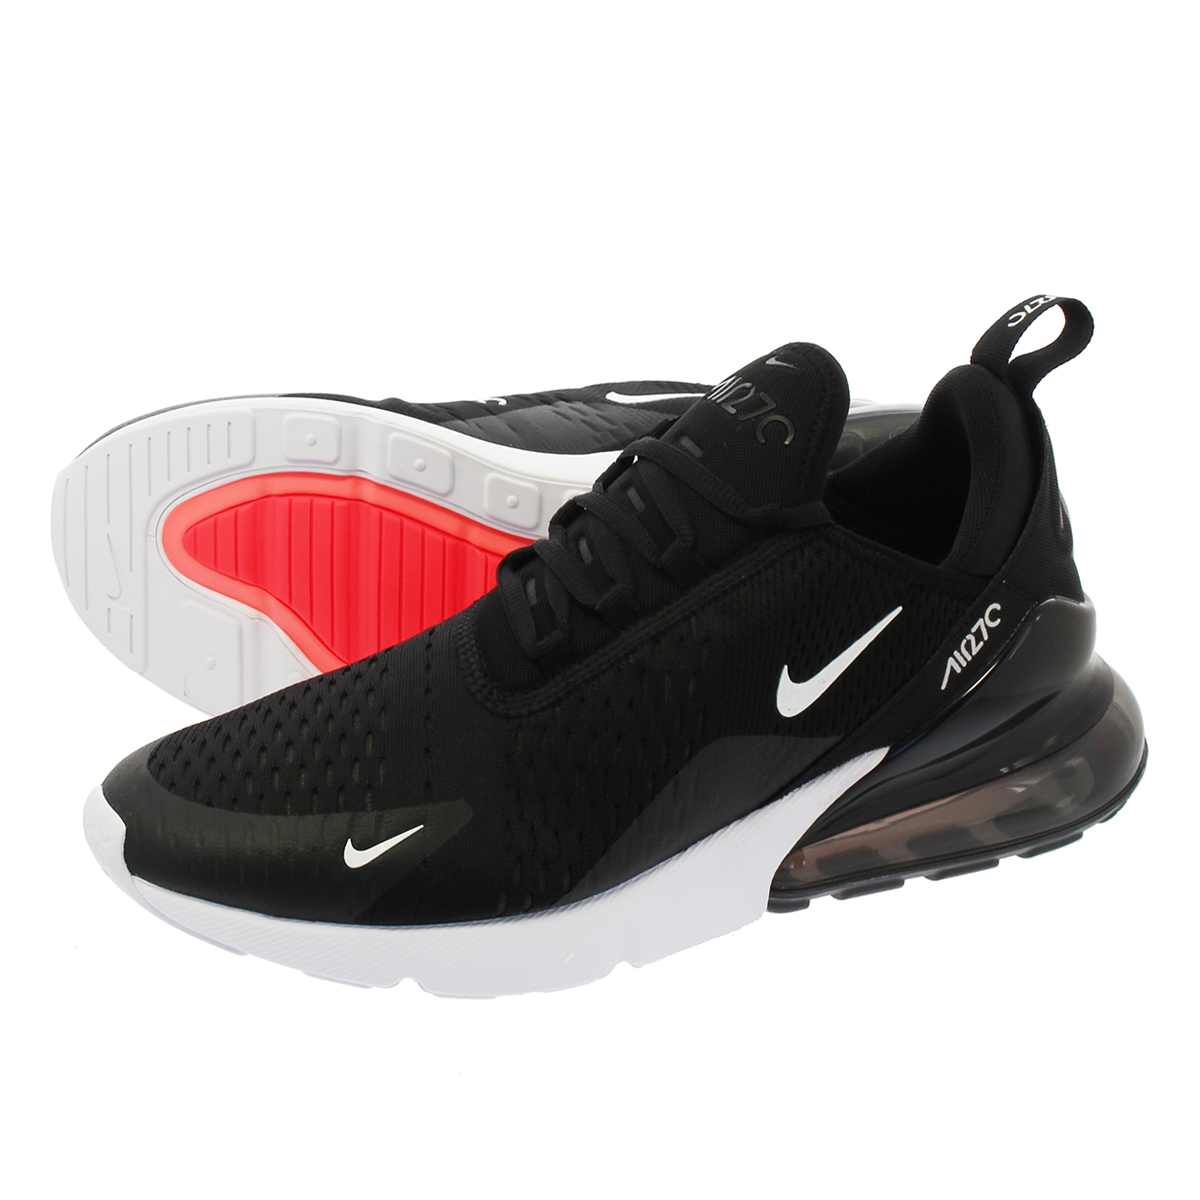 337759edb03f LOWTEX PLUS  NIKE AIR MAX 270 Kie Ney AMAX 270 BLACK ANTHRACITE WHITE SOLAR  RED